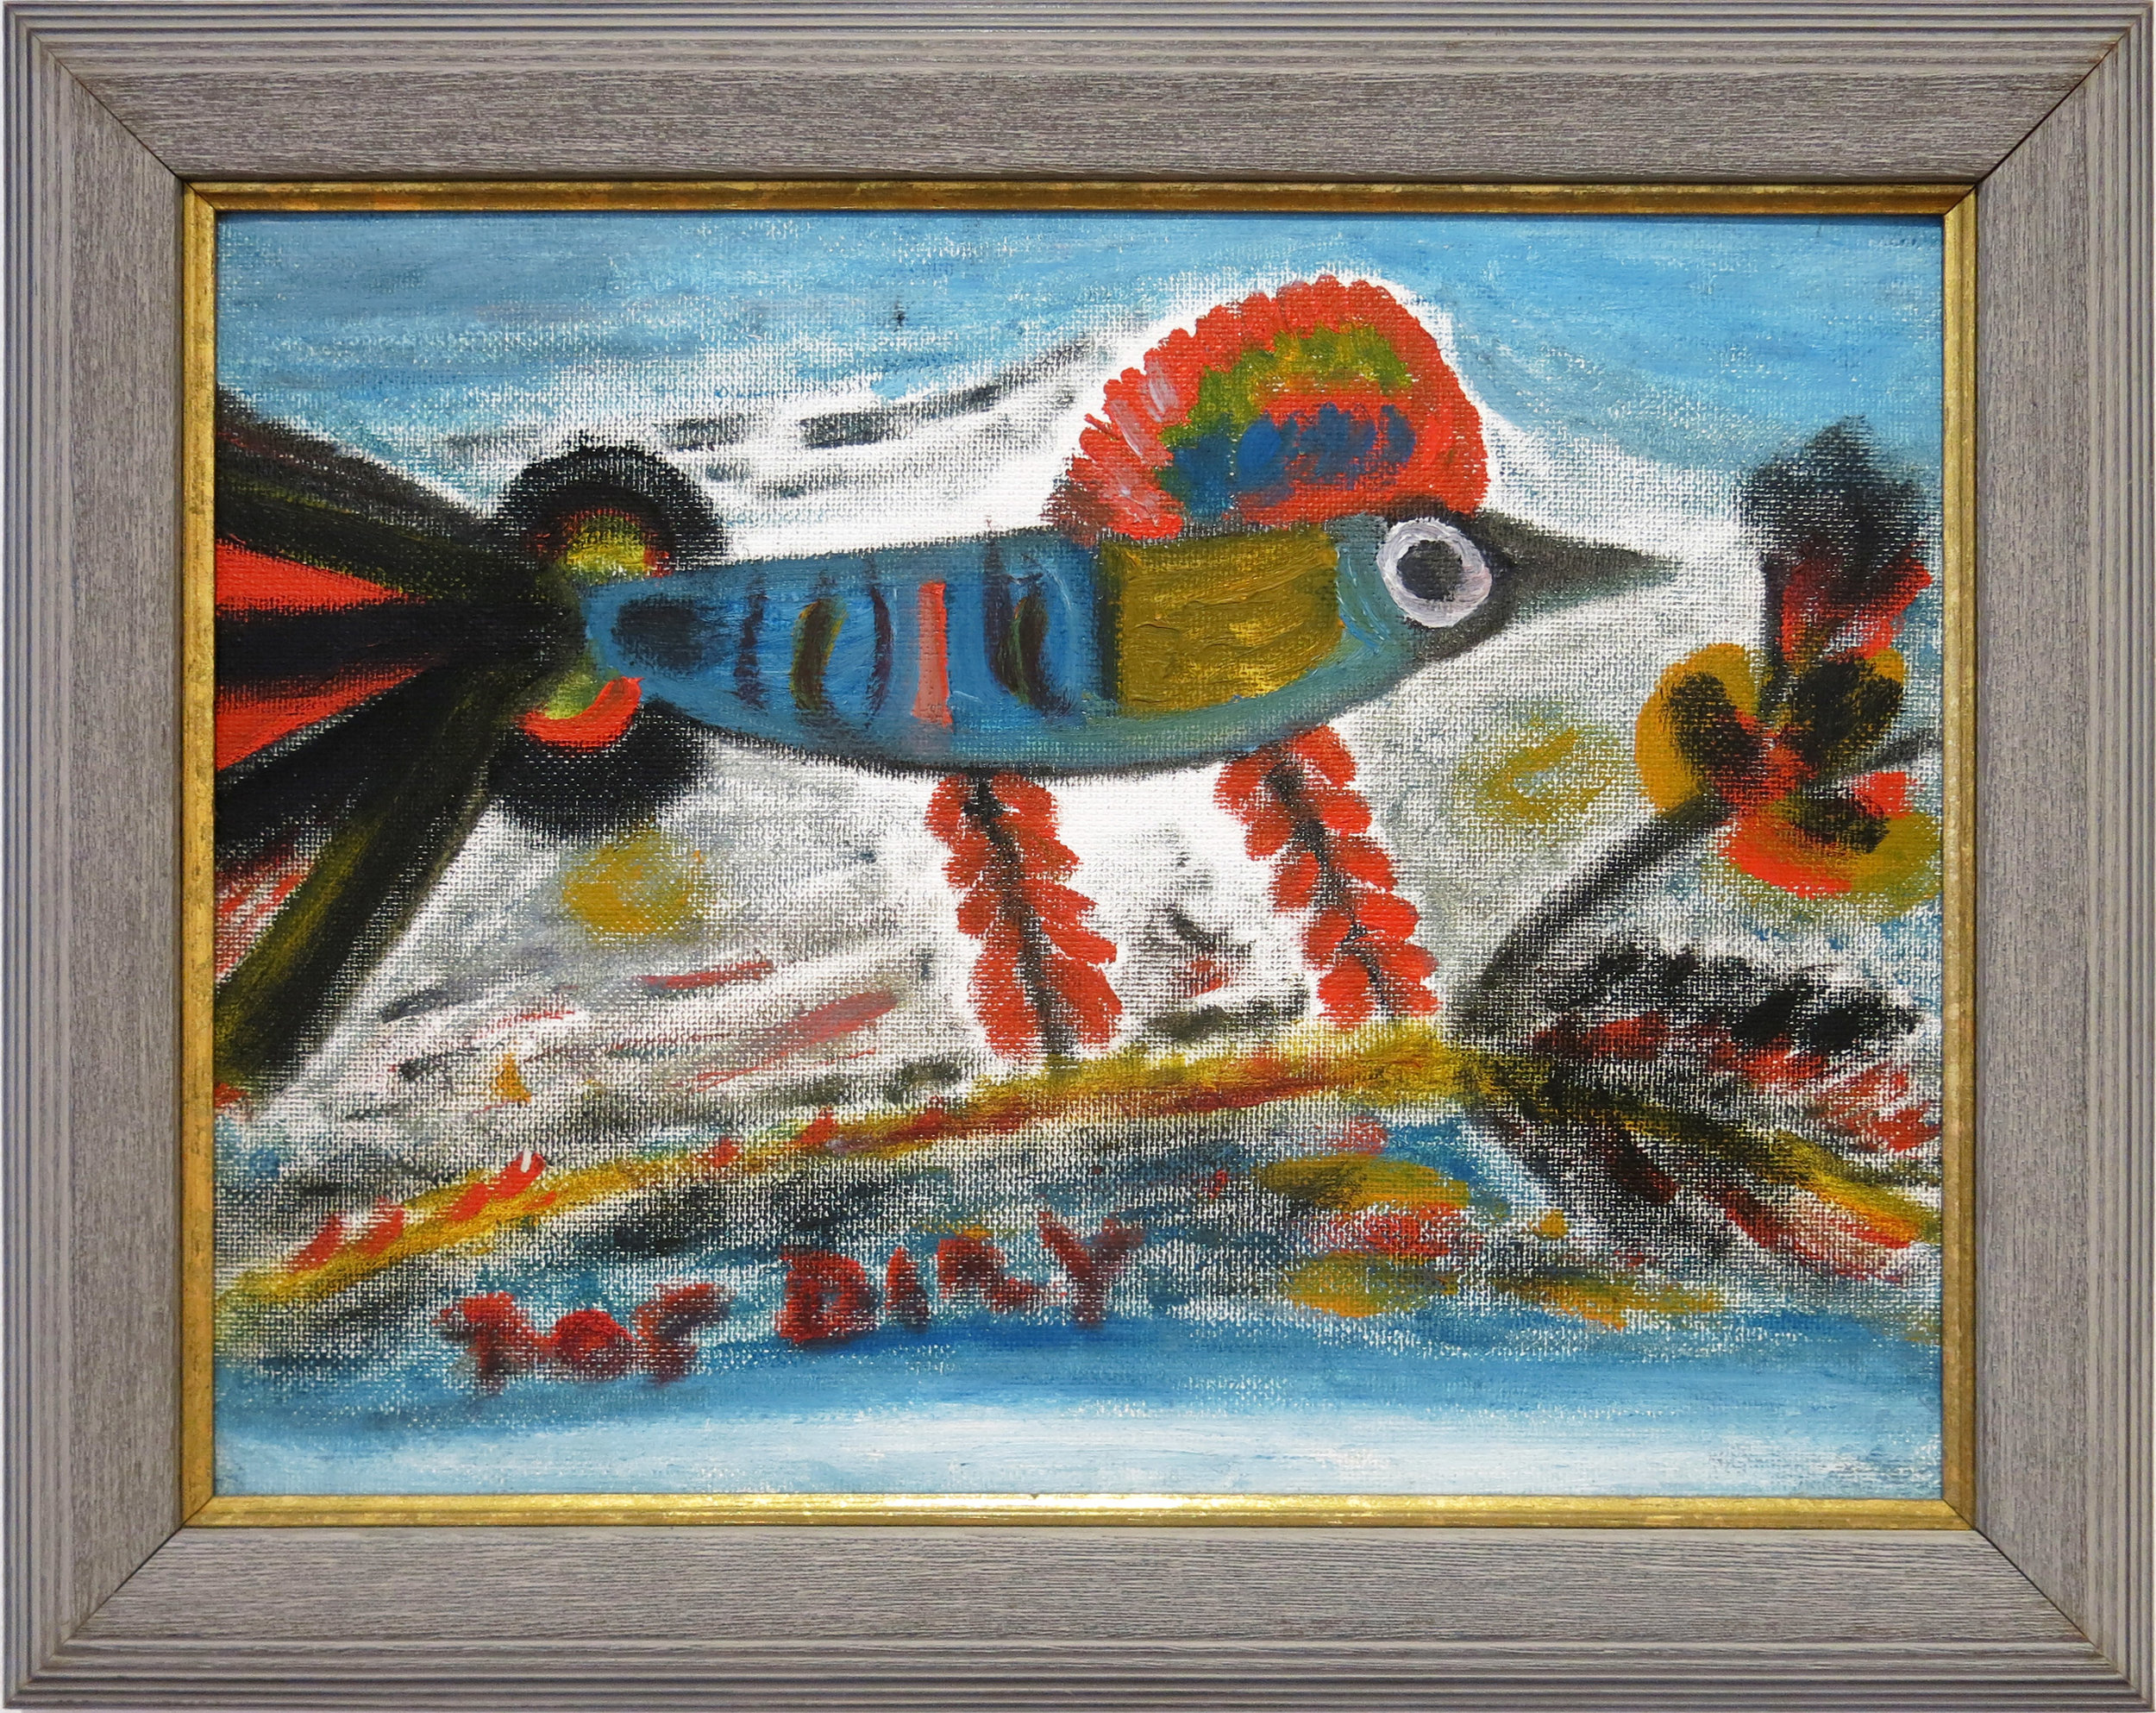 Raz Dizzy,   On Some Island These Birds,  1991, tempera on hardboard, 13 1/2h x 17 1/4w in.